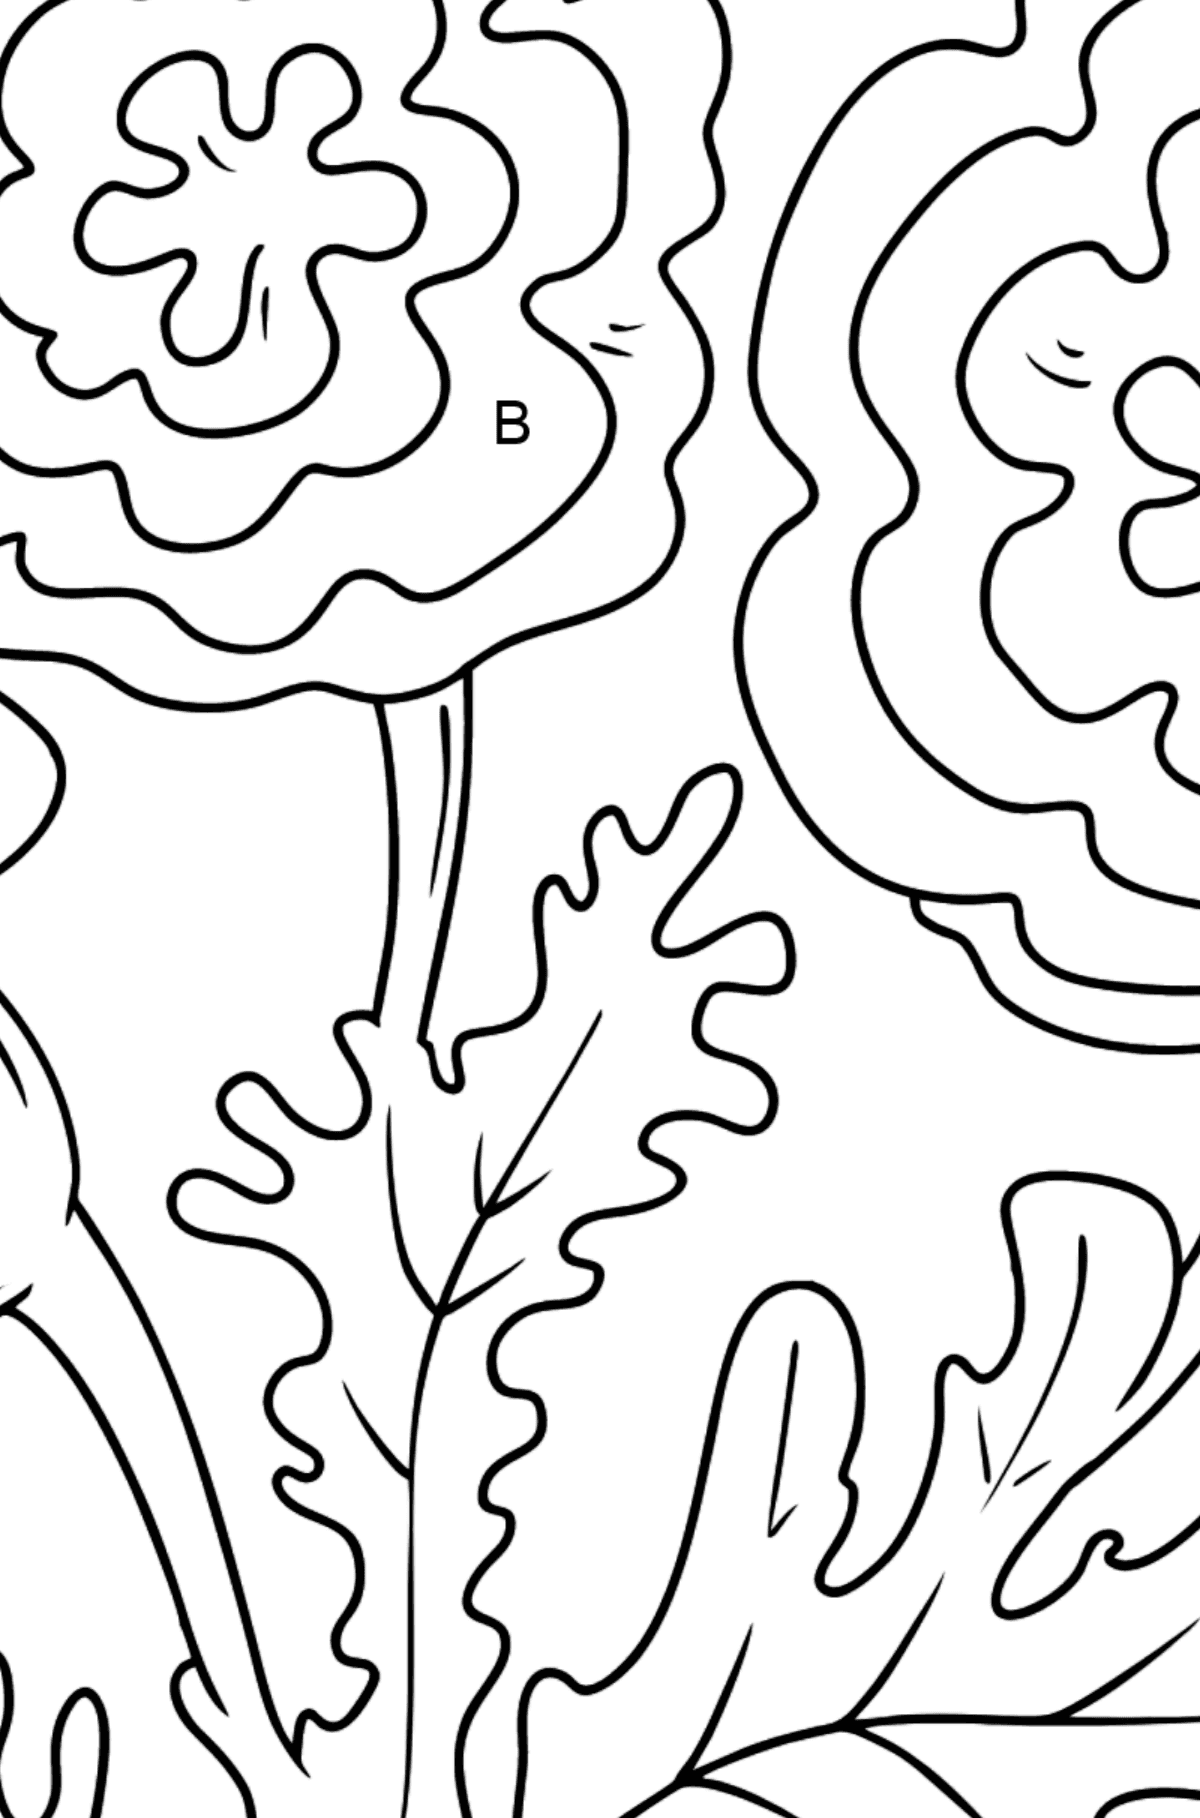 Coloring Page - Autumn flowers - Coloring by Letters for Kids